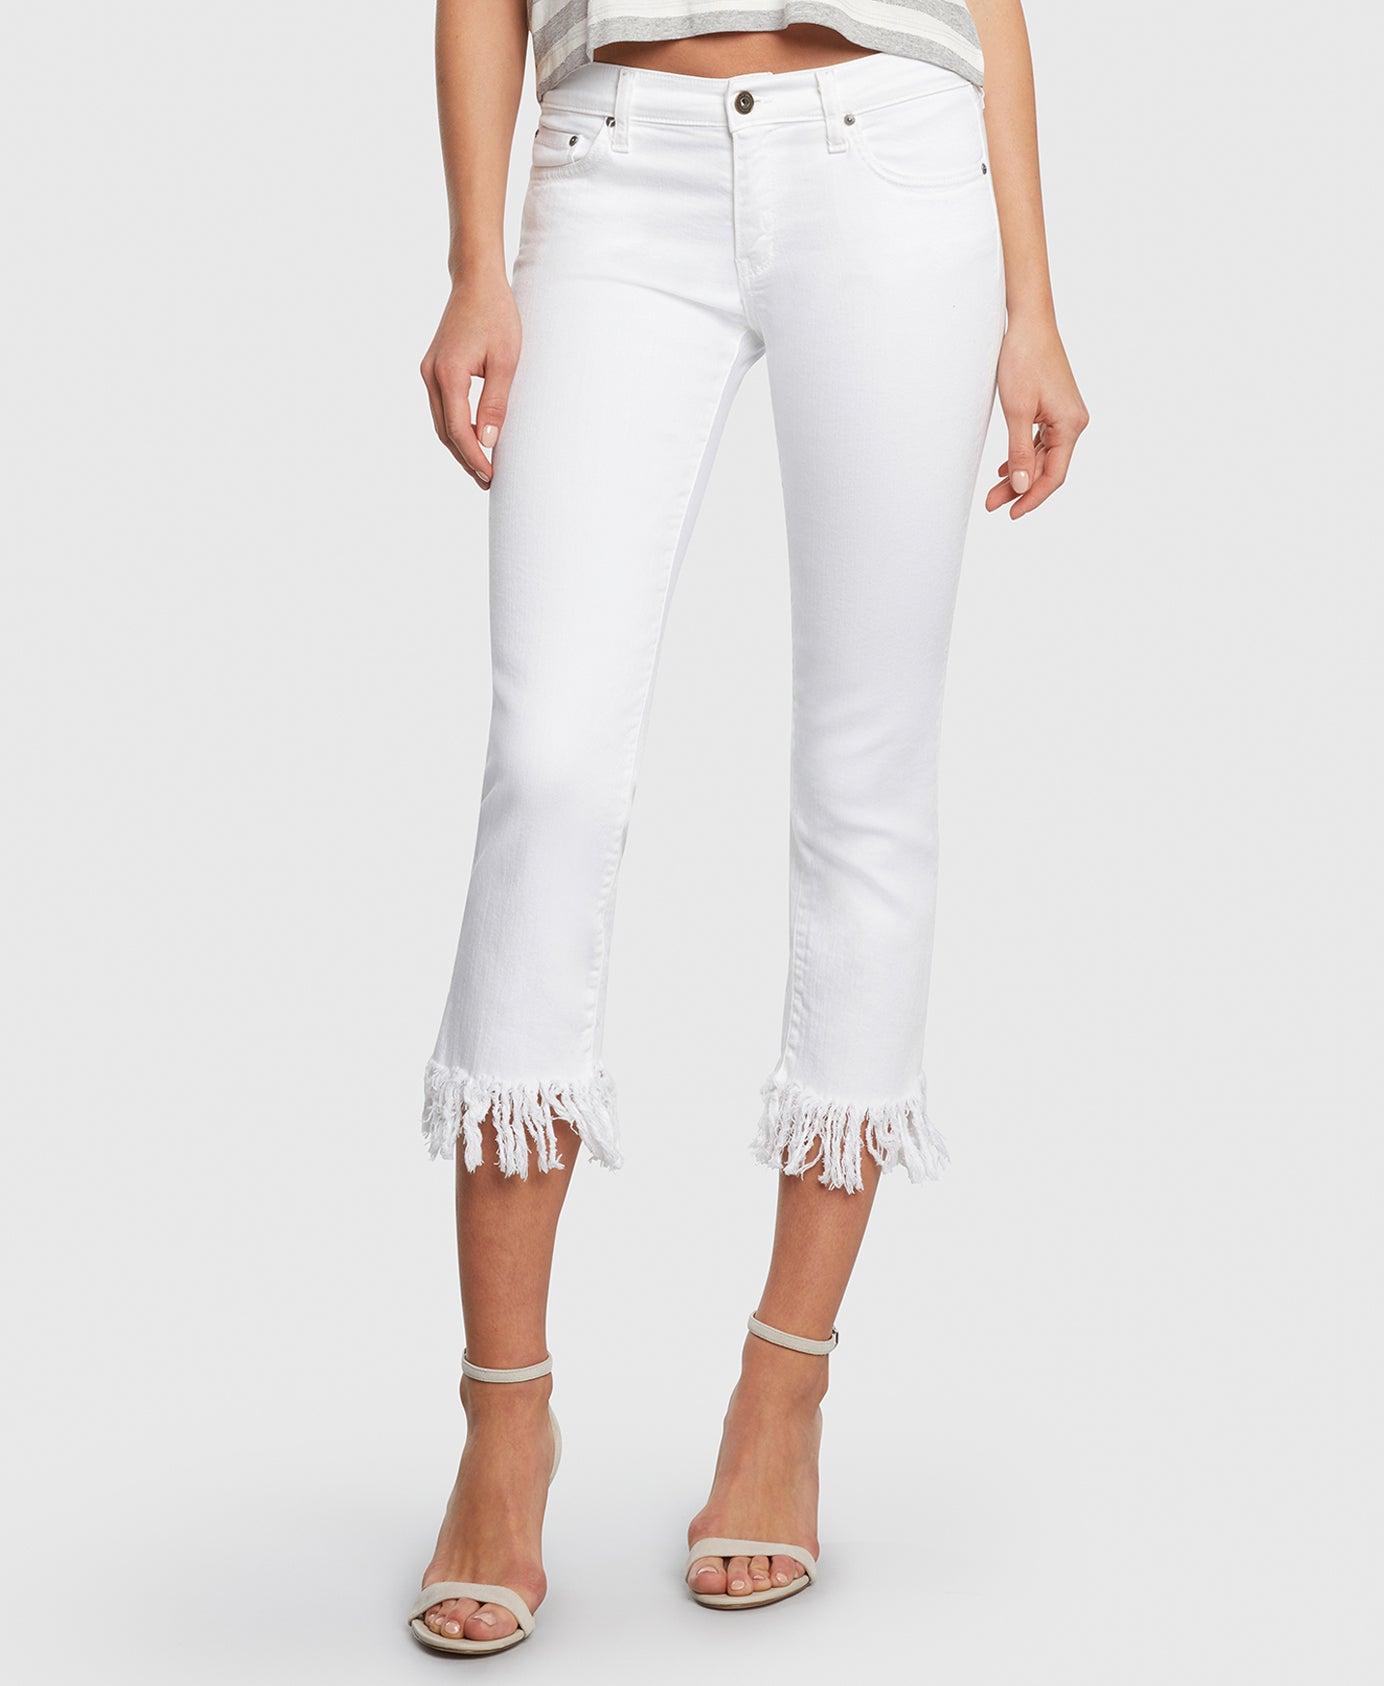 Principle mid rise OPTIMIST in Magnolia white jeans detail